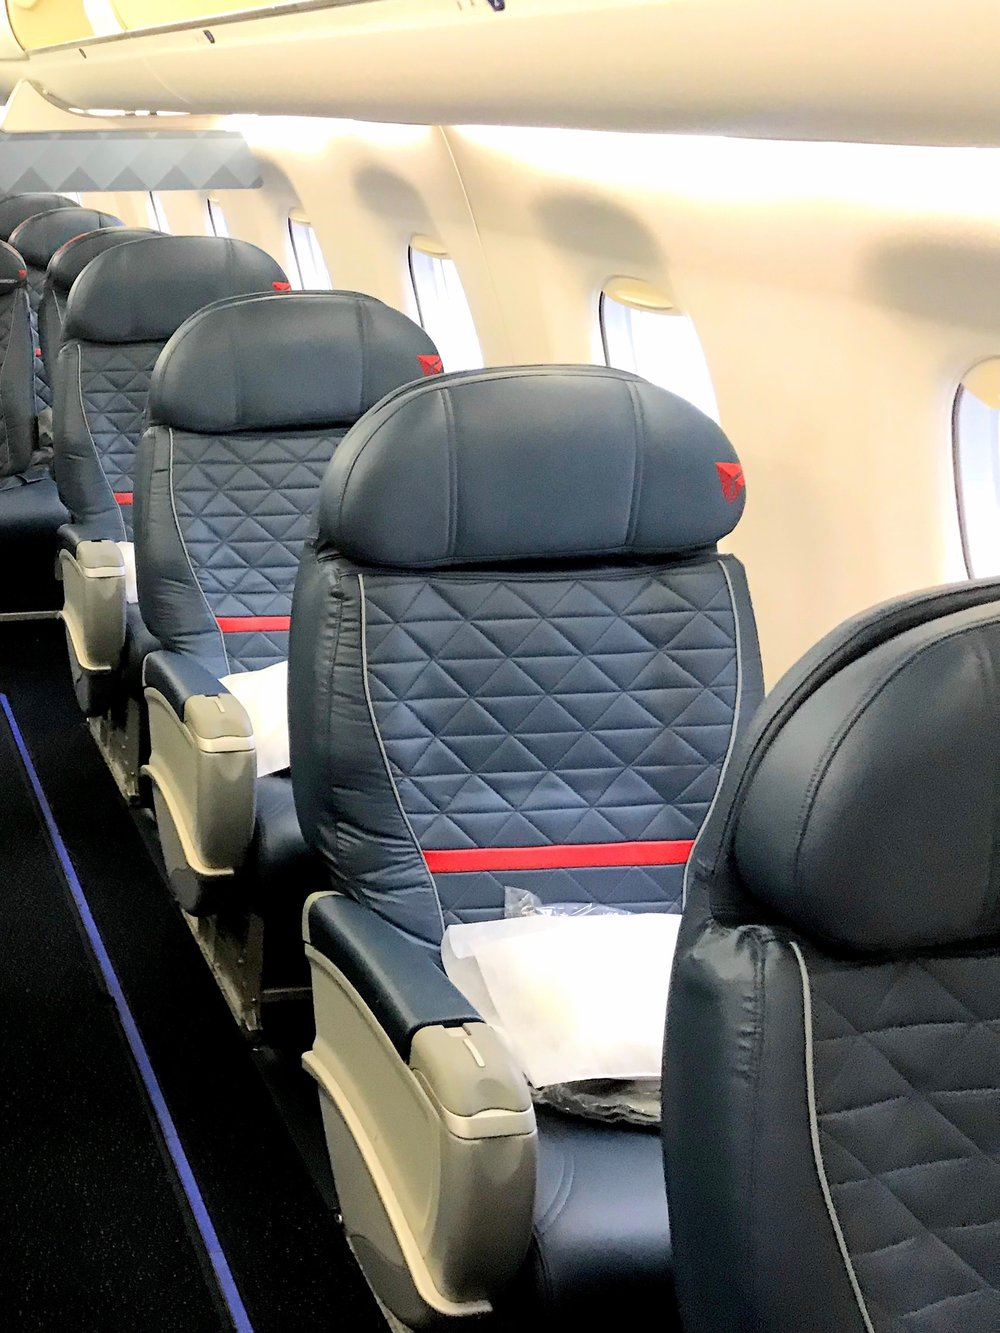 Seat 4A is 1 of 4 single seats in the First Class cabin.